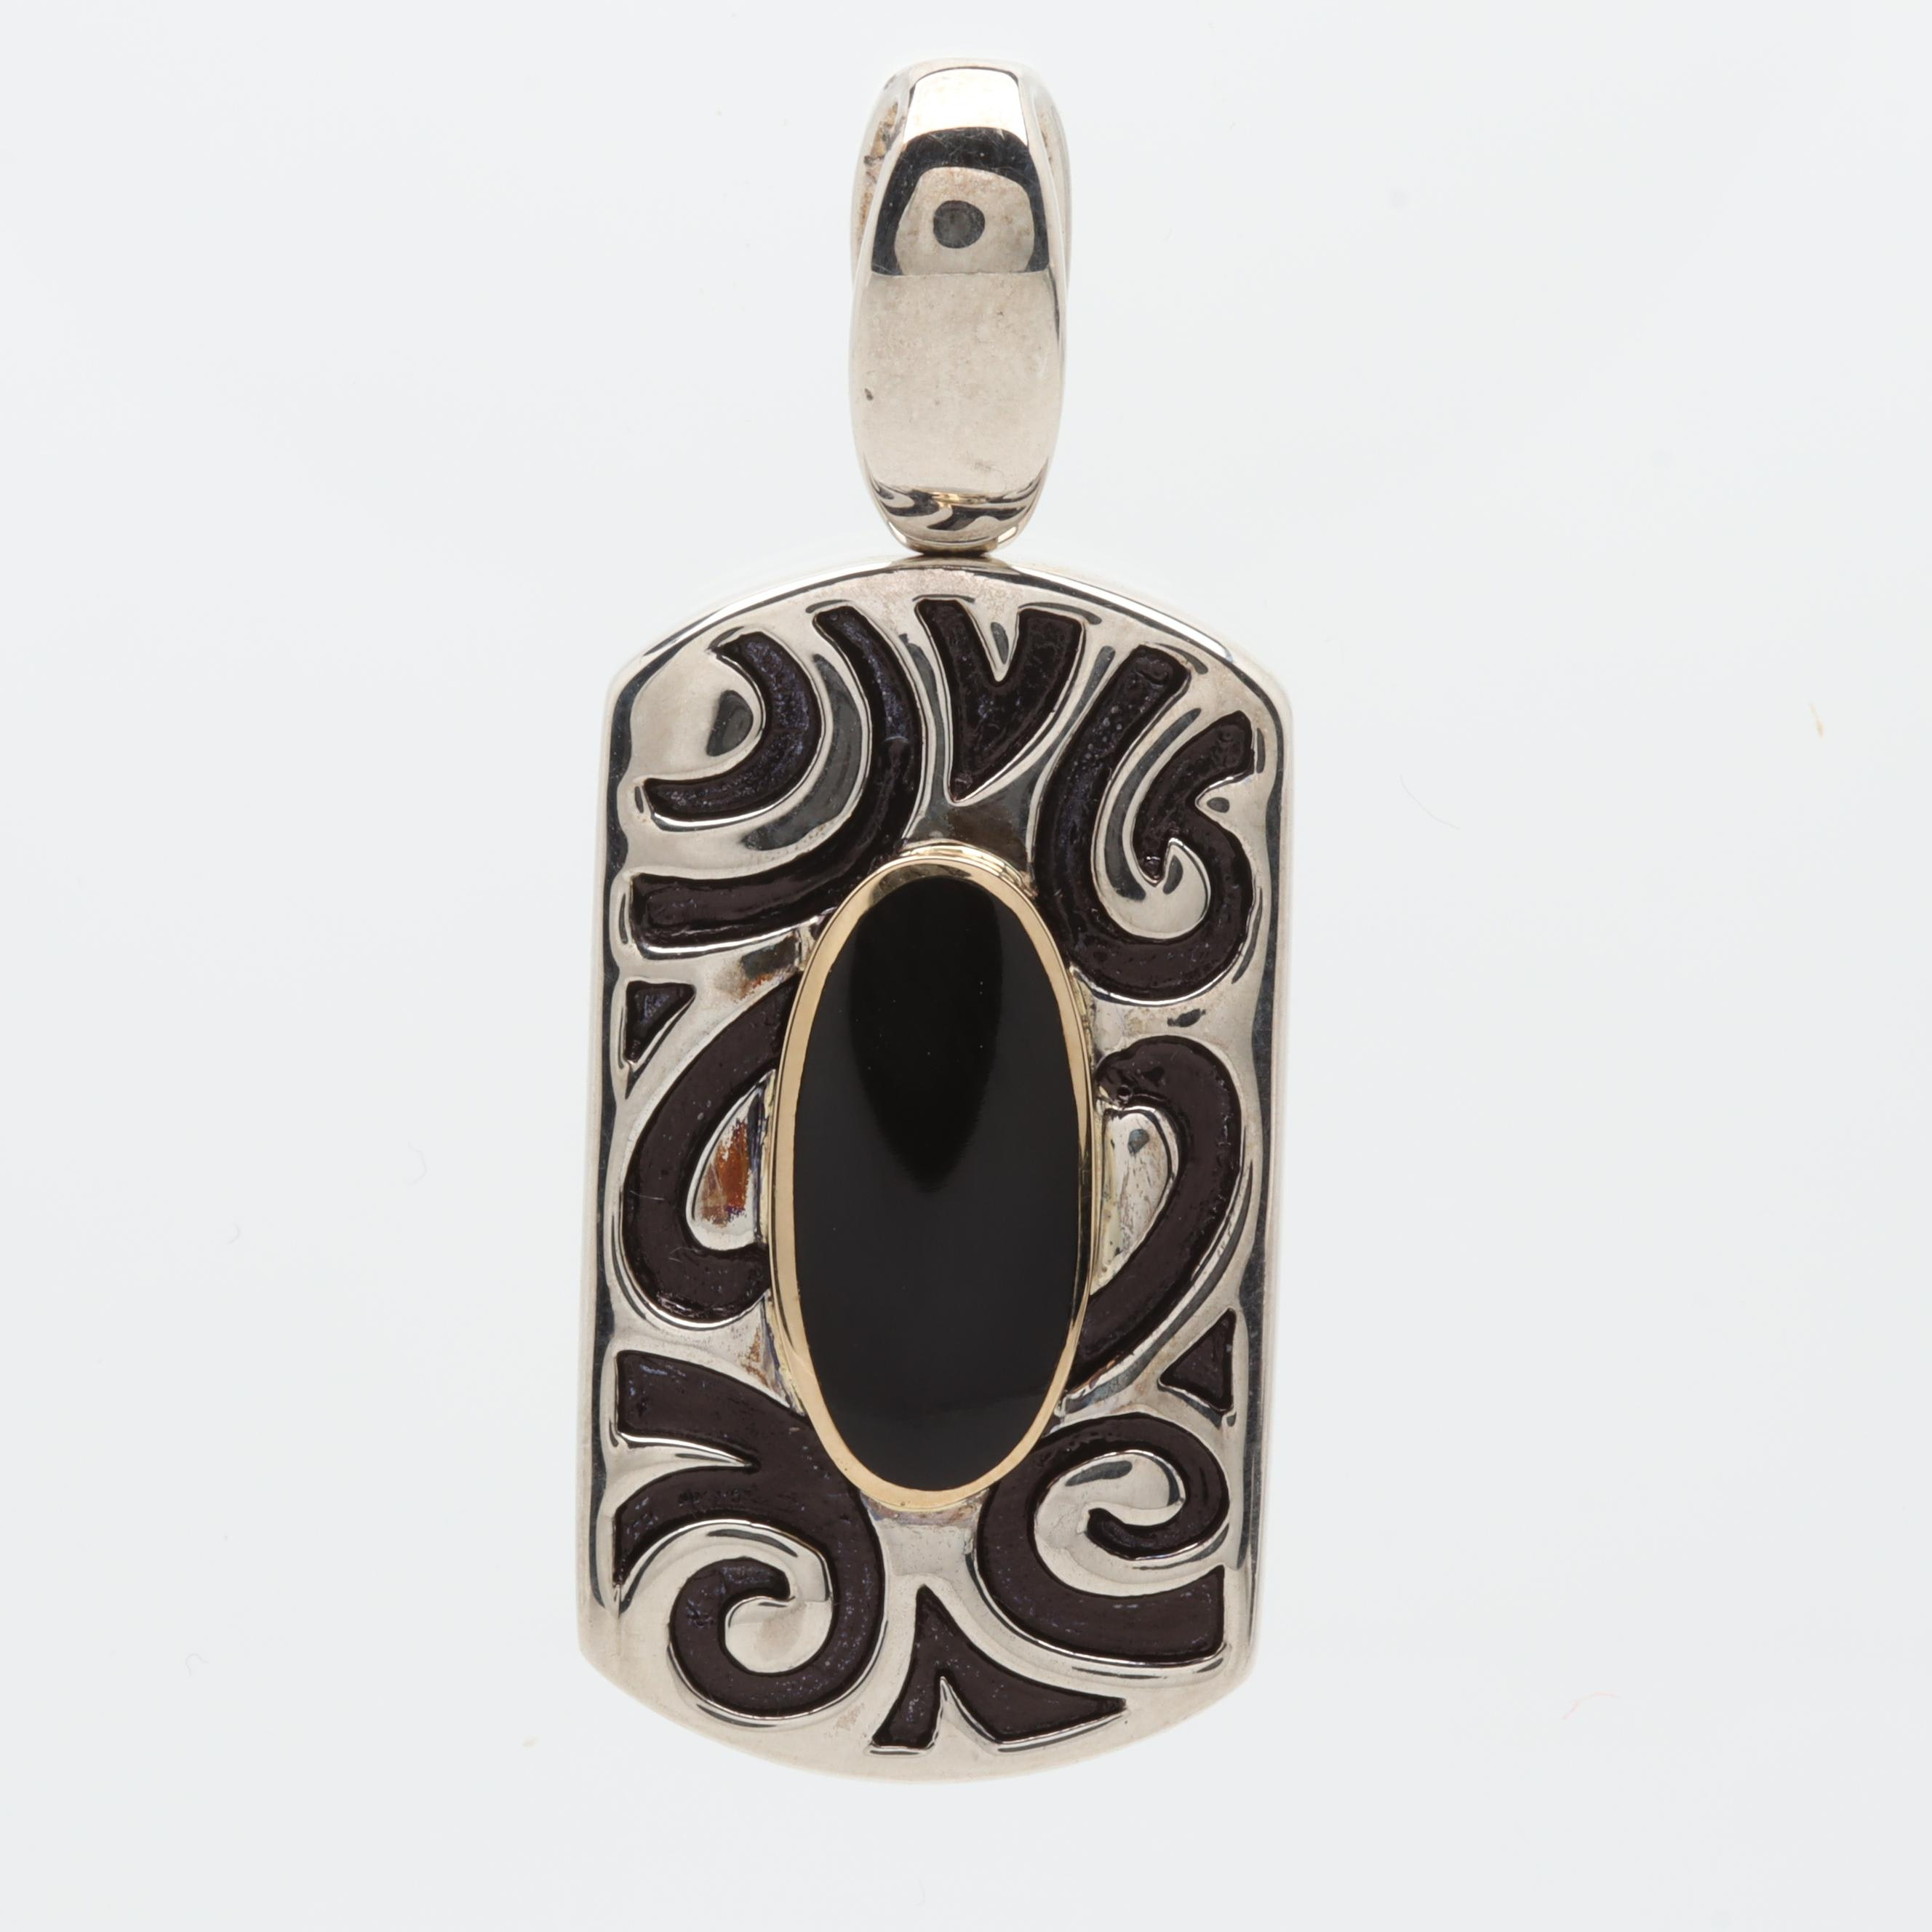 John Bagley Sterling Silver Black Onyx Pendant with 18K Yellow Gold Accent